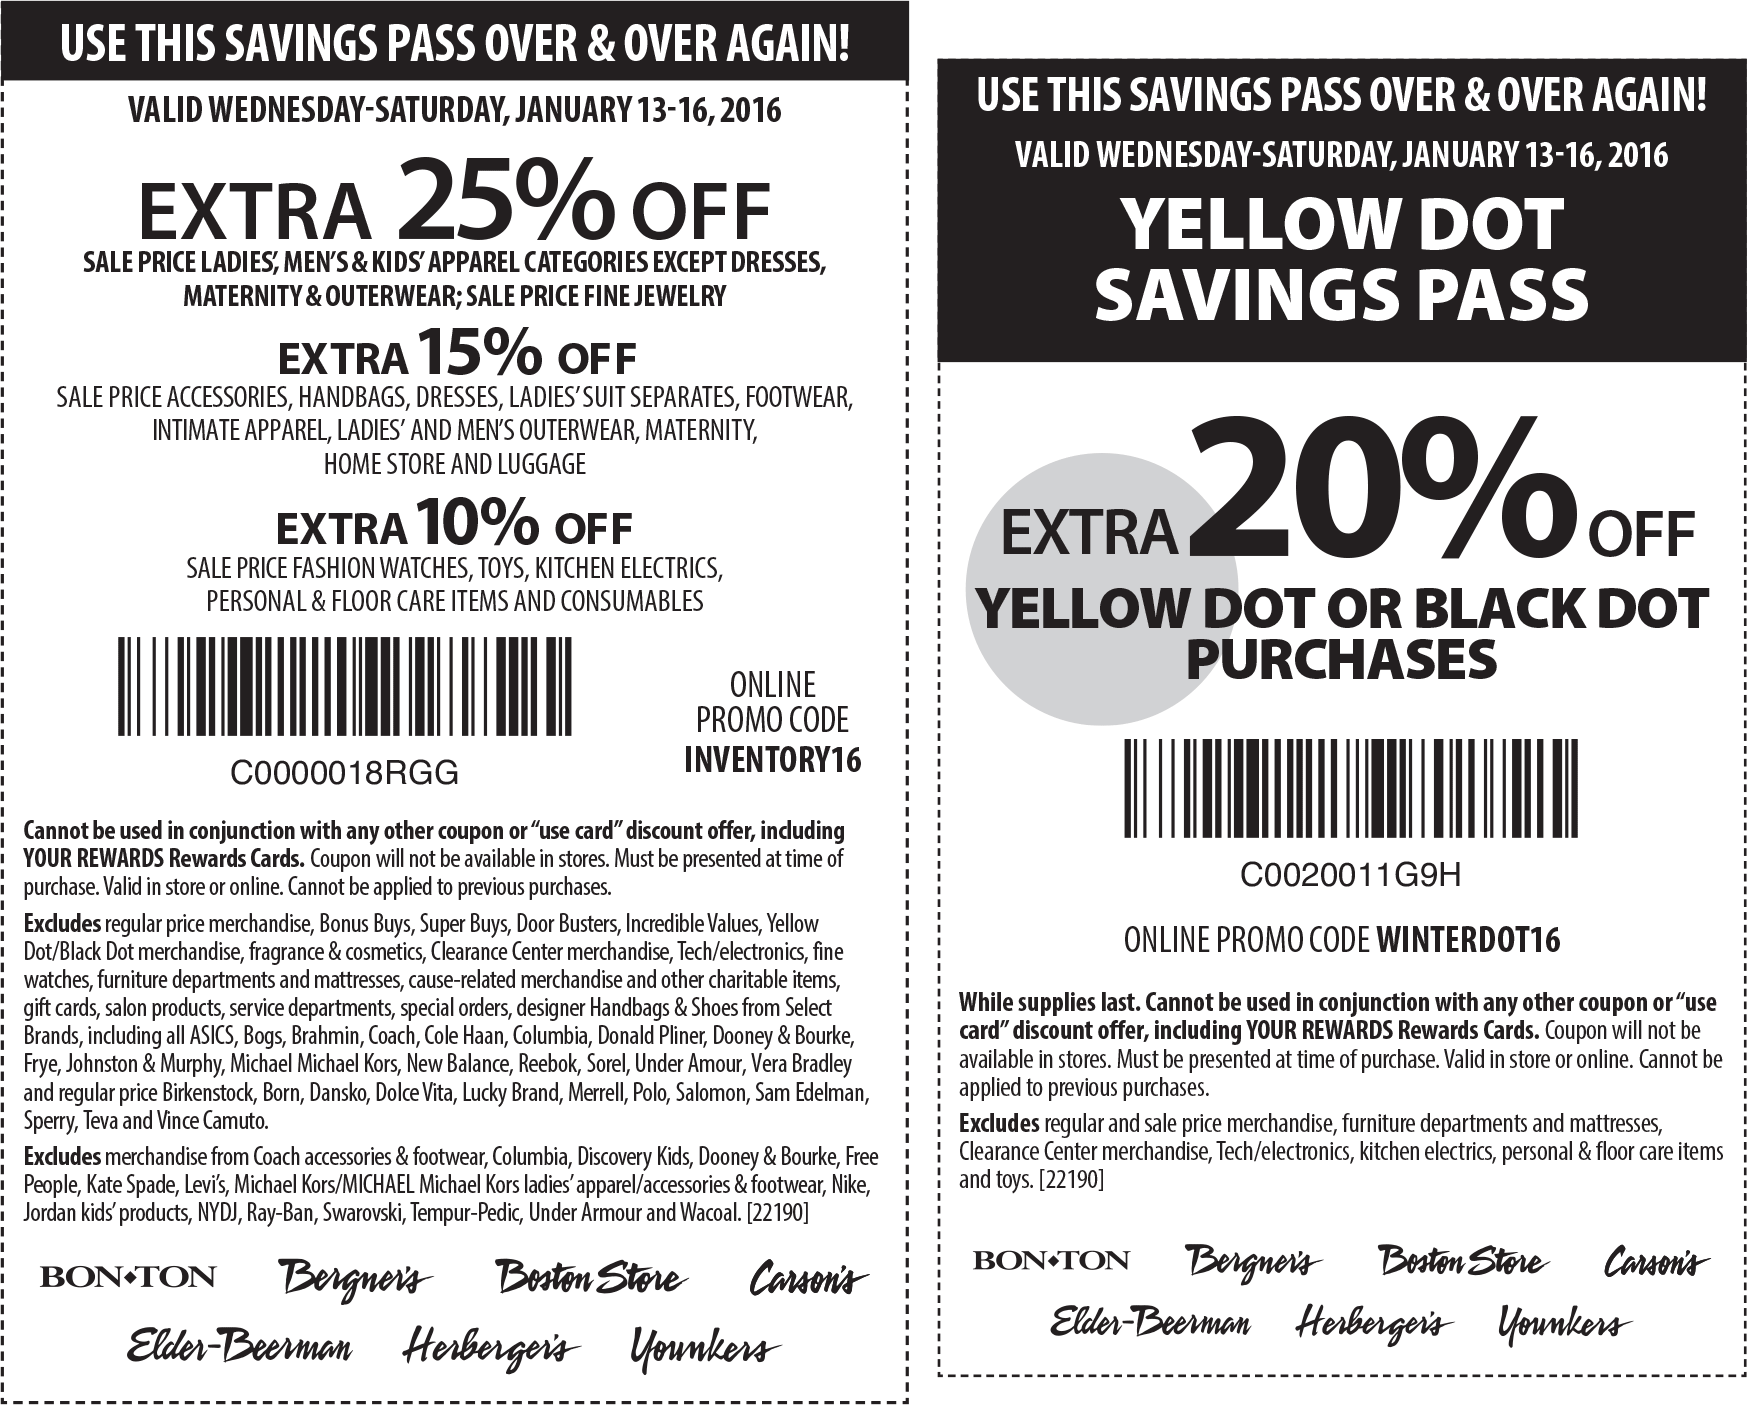 Carsons Coupon August 2017 Extra 25% off & more at Bon Ton, Carsons & sister stores, or online via promo code INVENTORY16